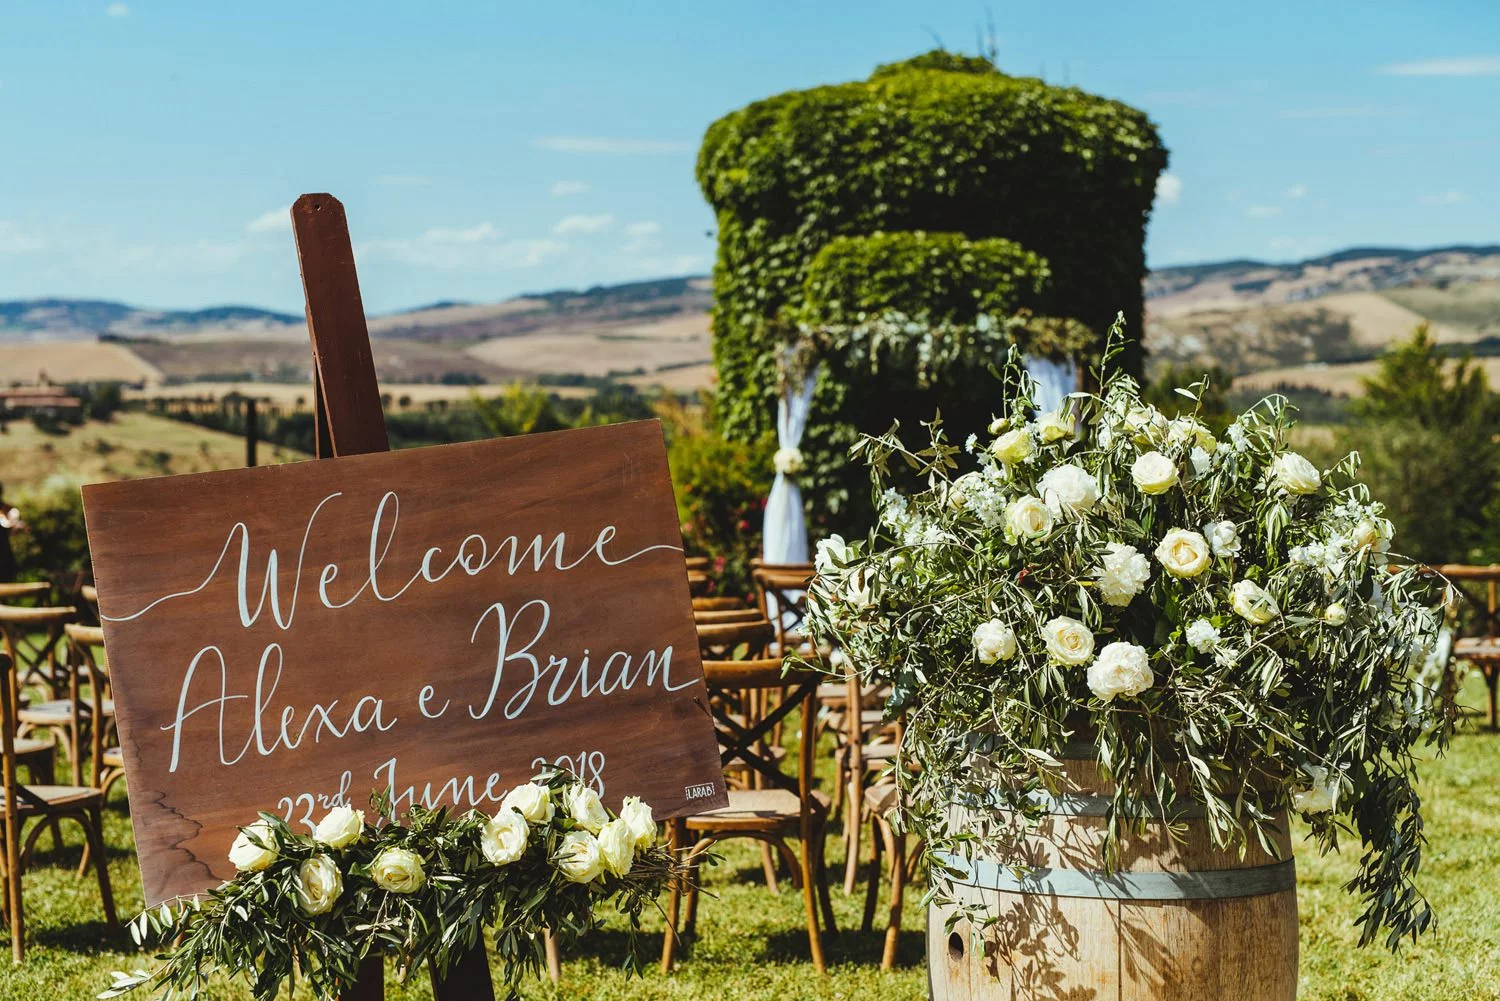 A sign reads 'Welcome Alexa e Brian' at a beautiful outdoor wedding ceremony in Tuscan.